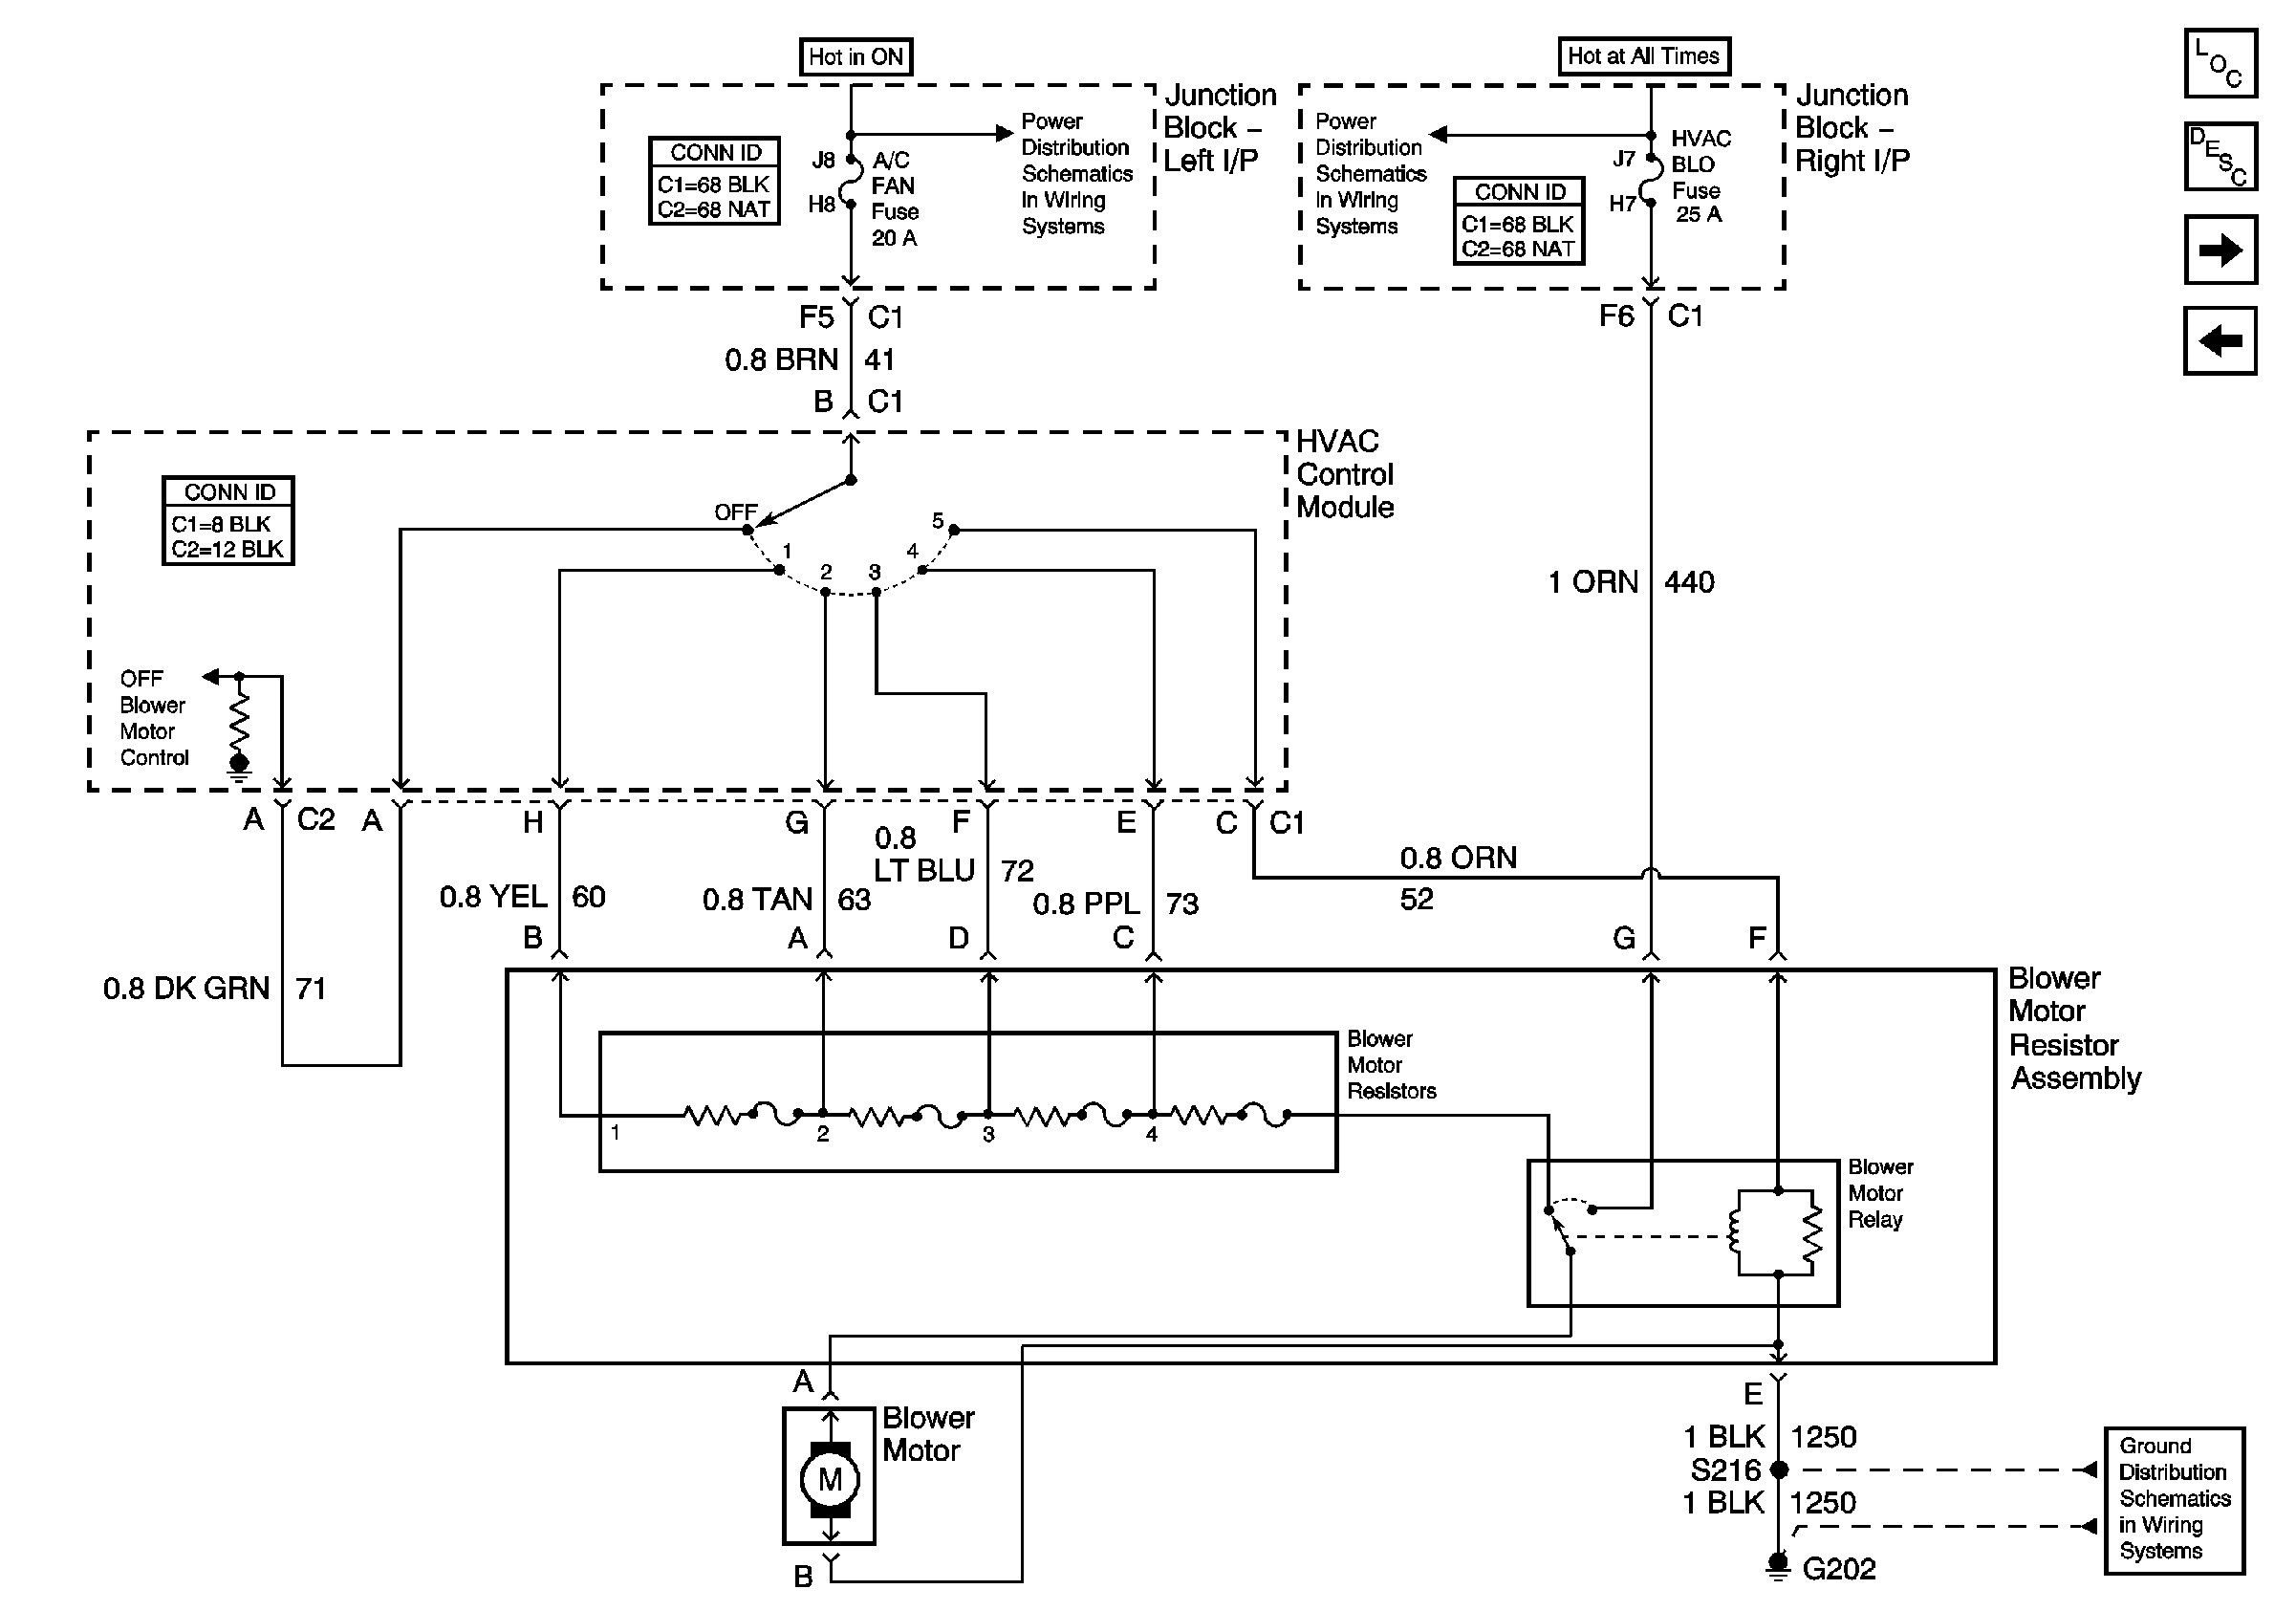 Hvac Blower Motor Wiring Diagram New in 2020 Electrical